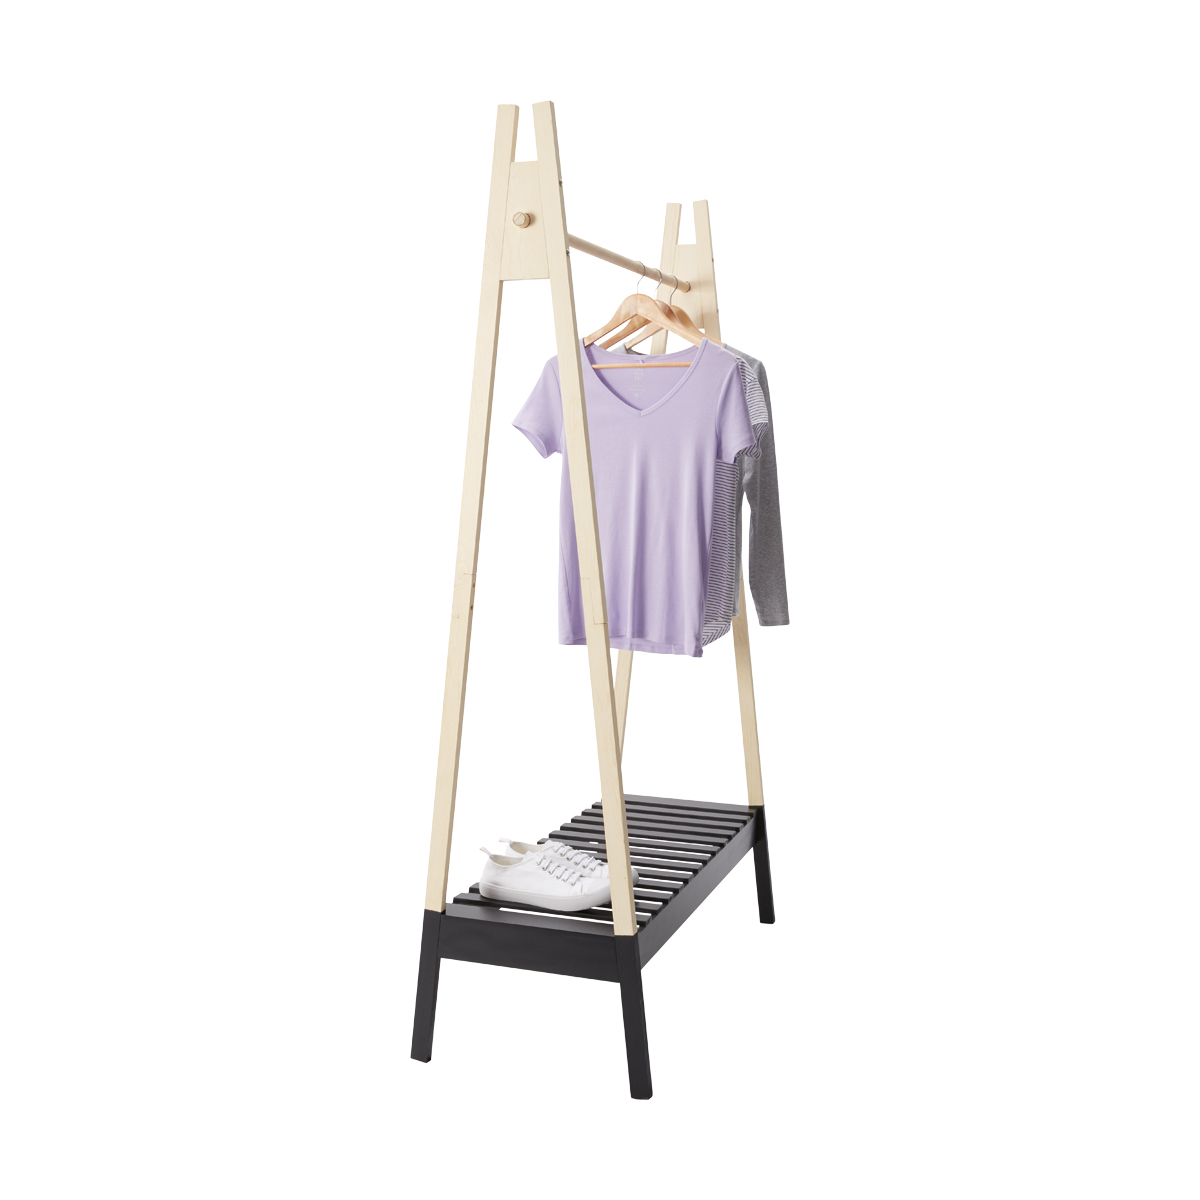 Kmart timber clothes rail